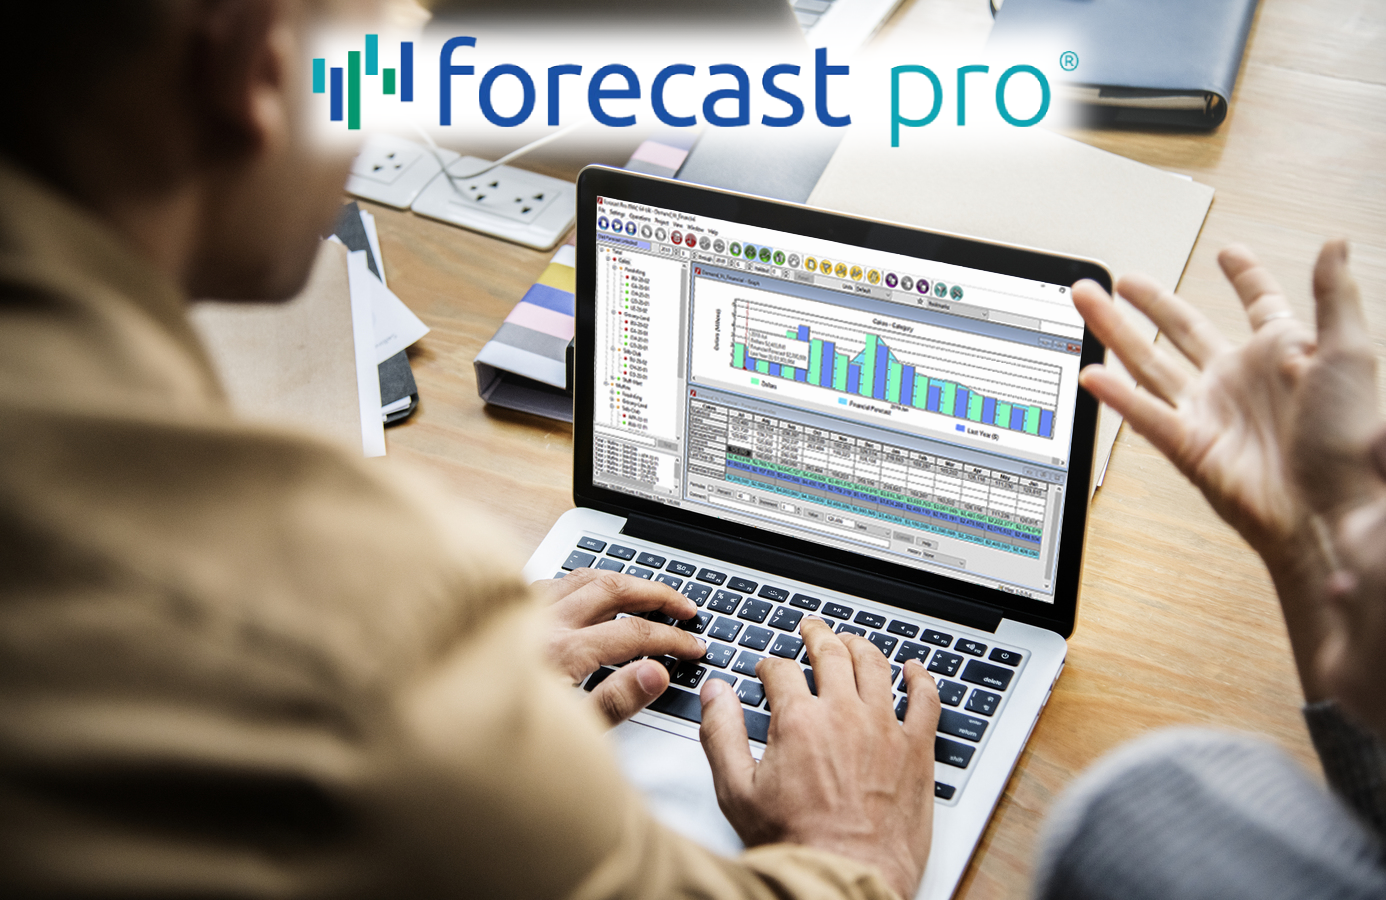 Business Forecasting: Techniques, Best Practices & Application Using Forecast Pro